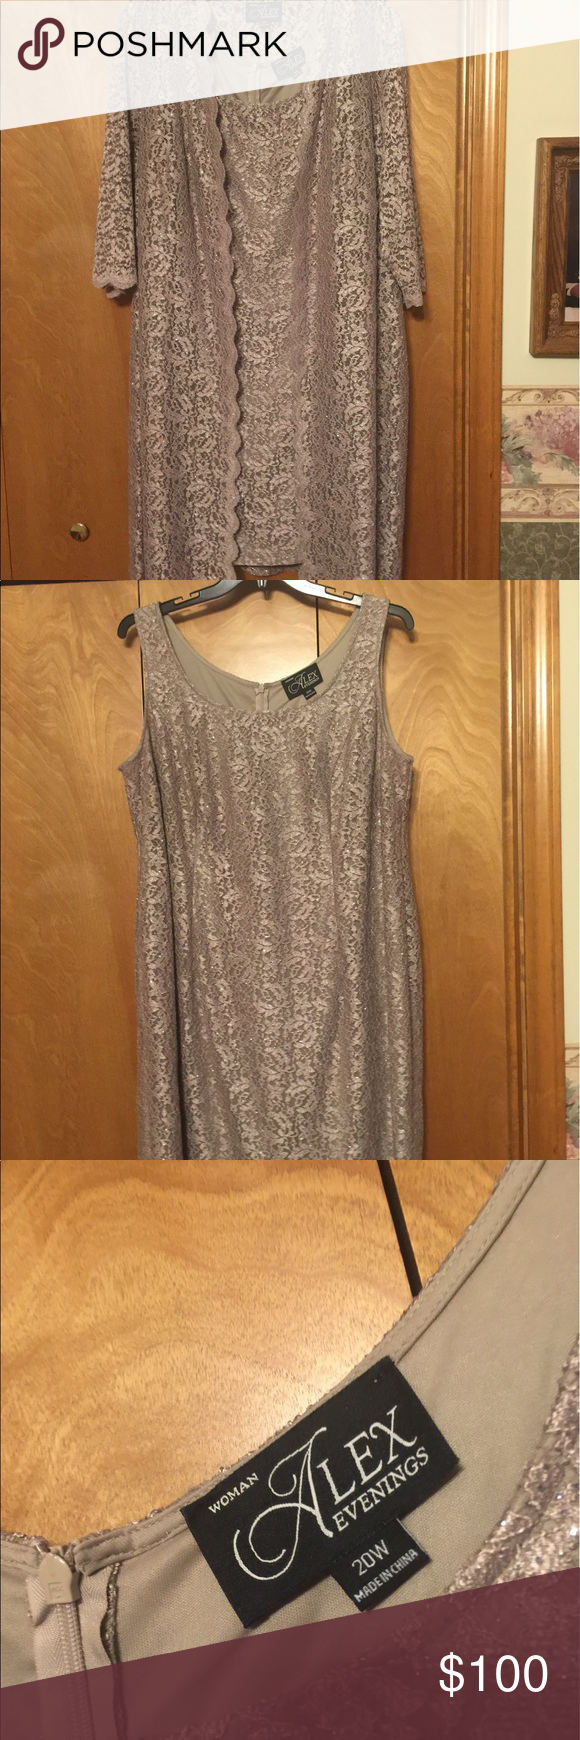 Mother of the bride dresses afternoon wedding  Alex brand evening dress  Taupe colour Taupe and Conditioner